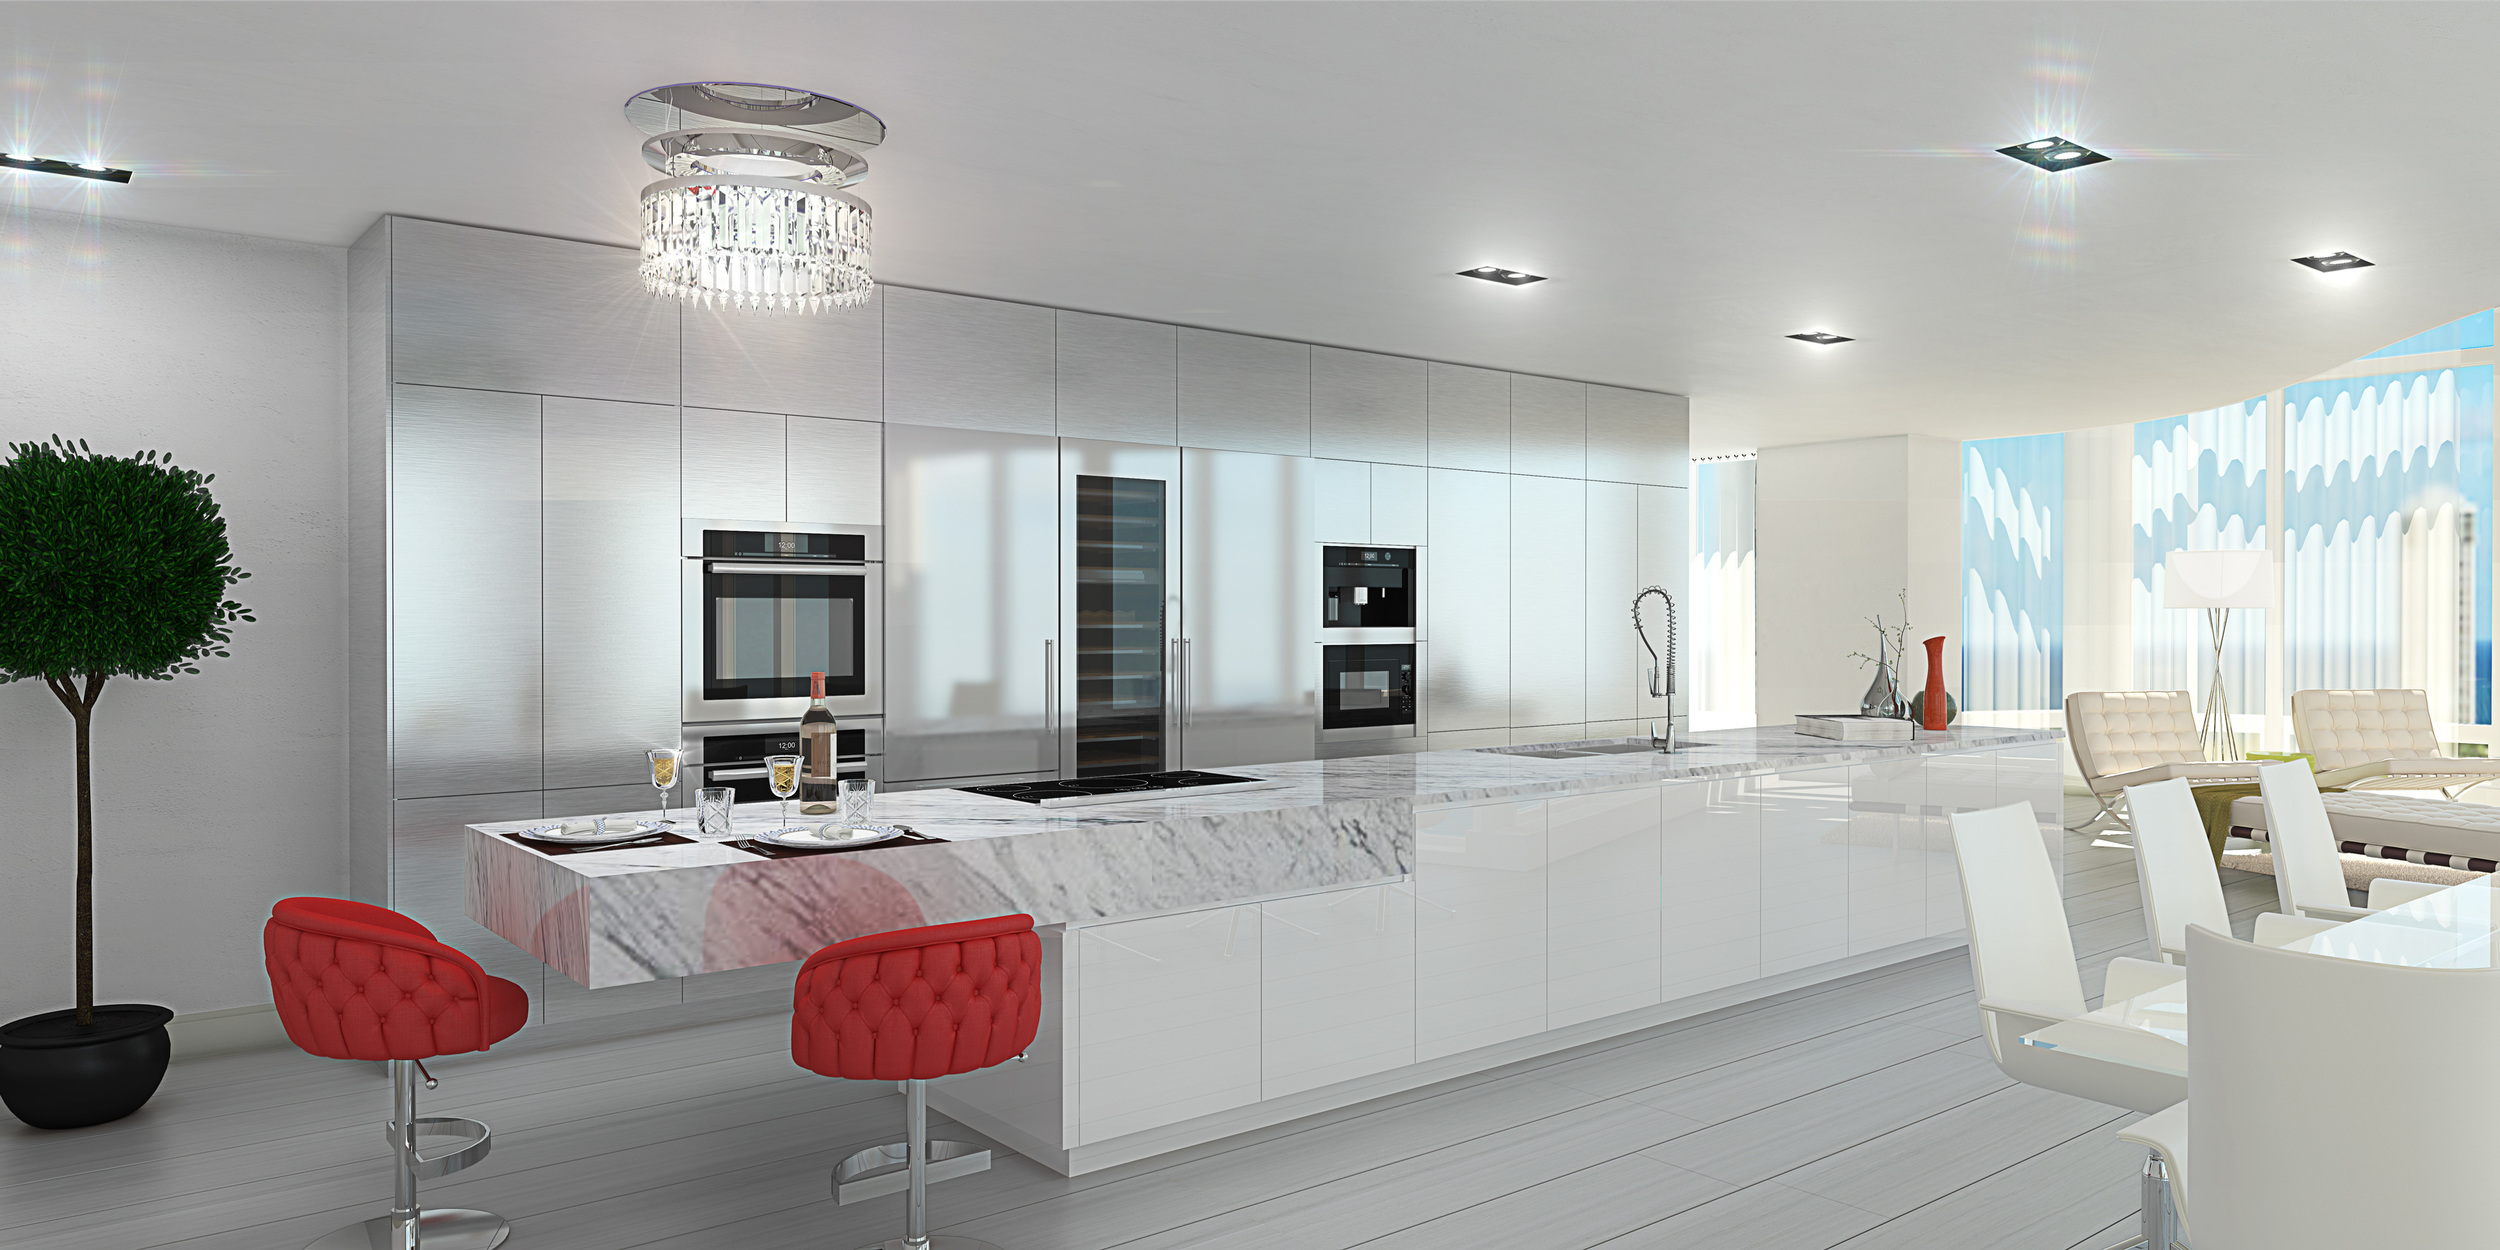 4-RESIDENCES-Kitchen.jpg